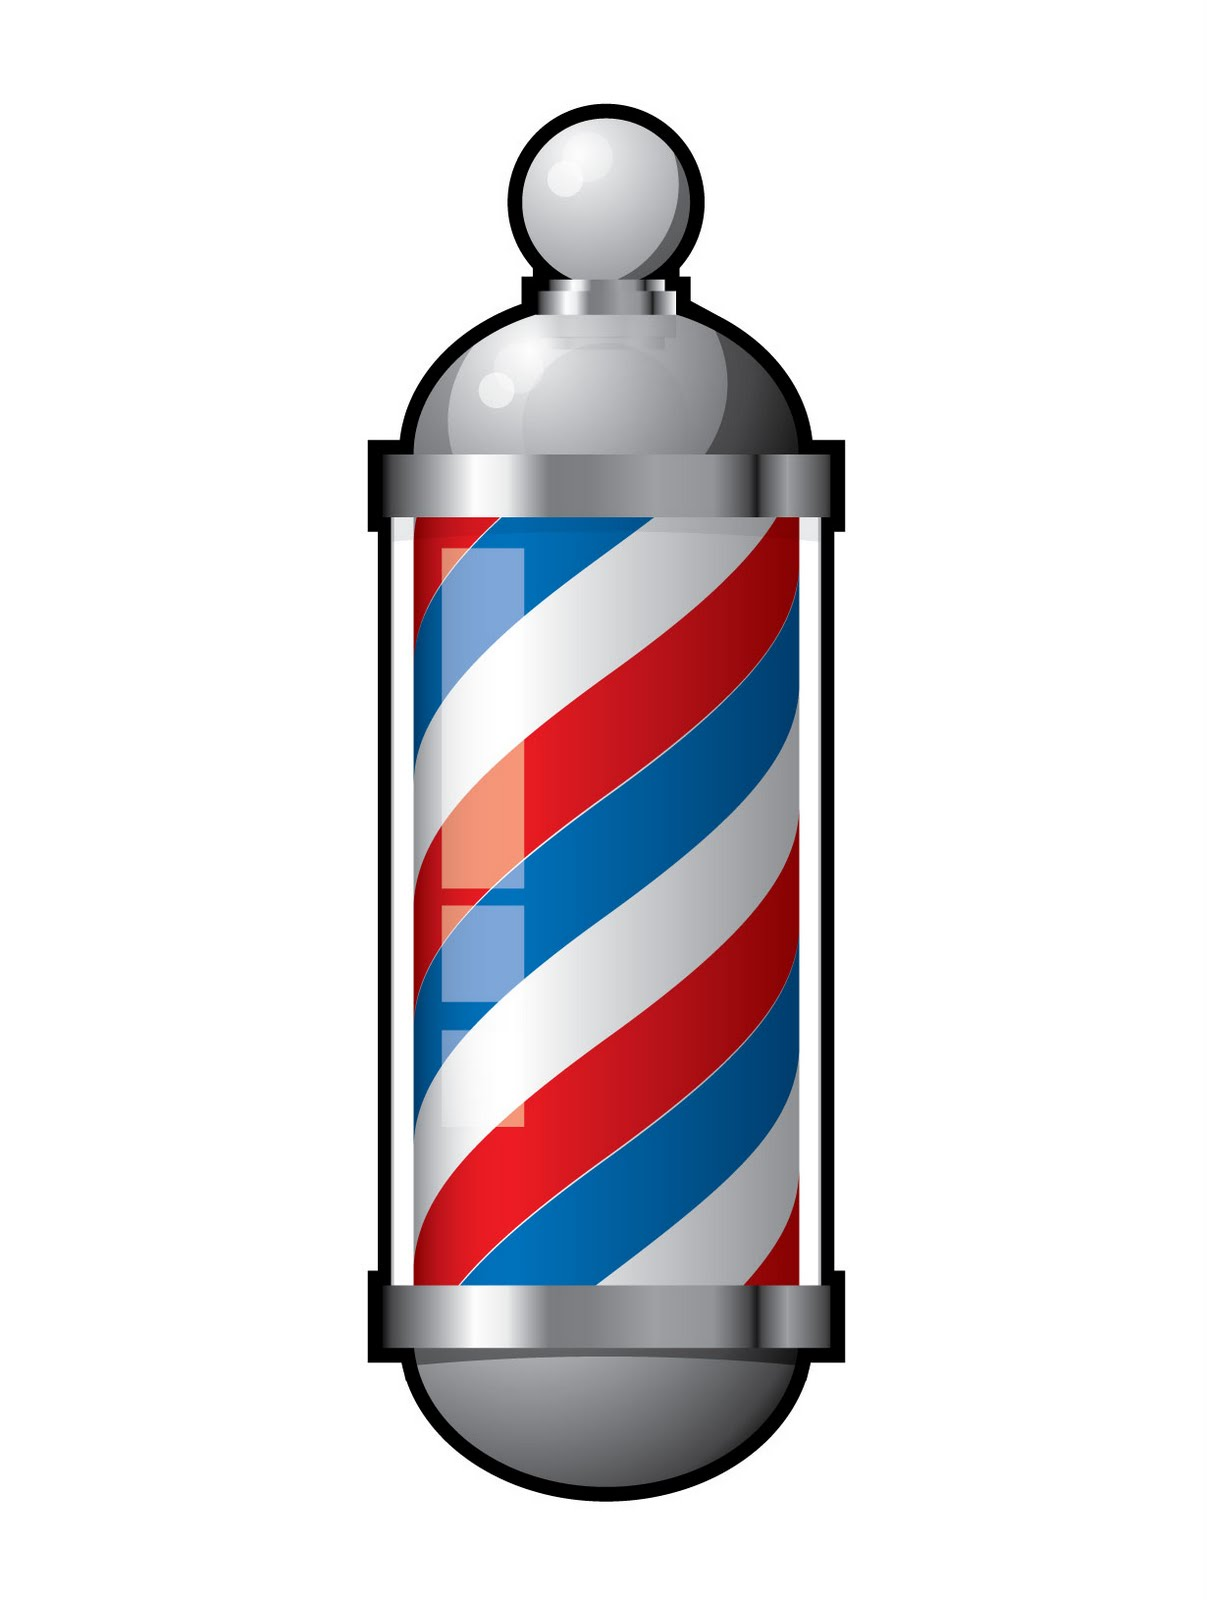 Barber Pole Vector - ClipArt Best